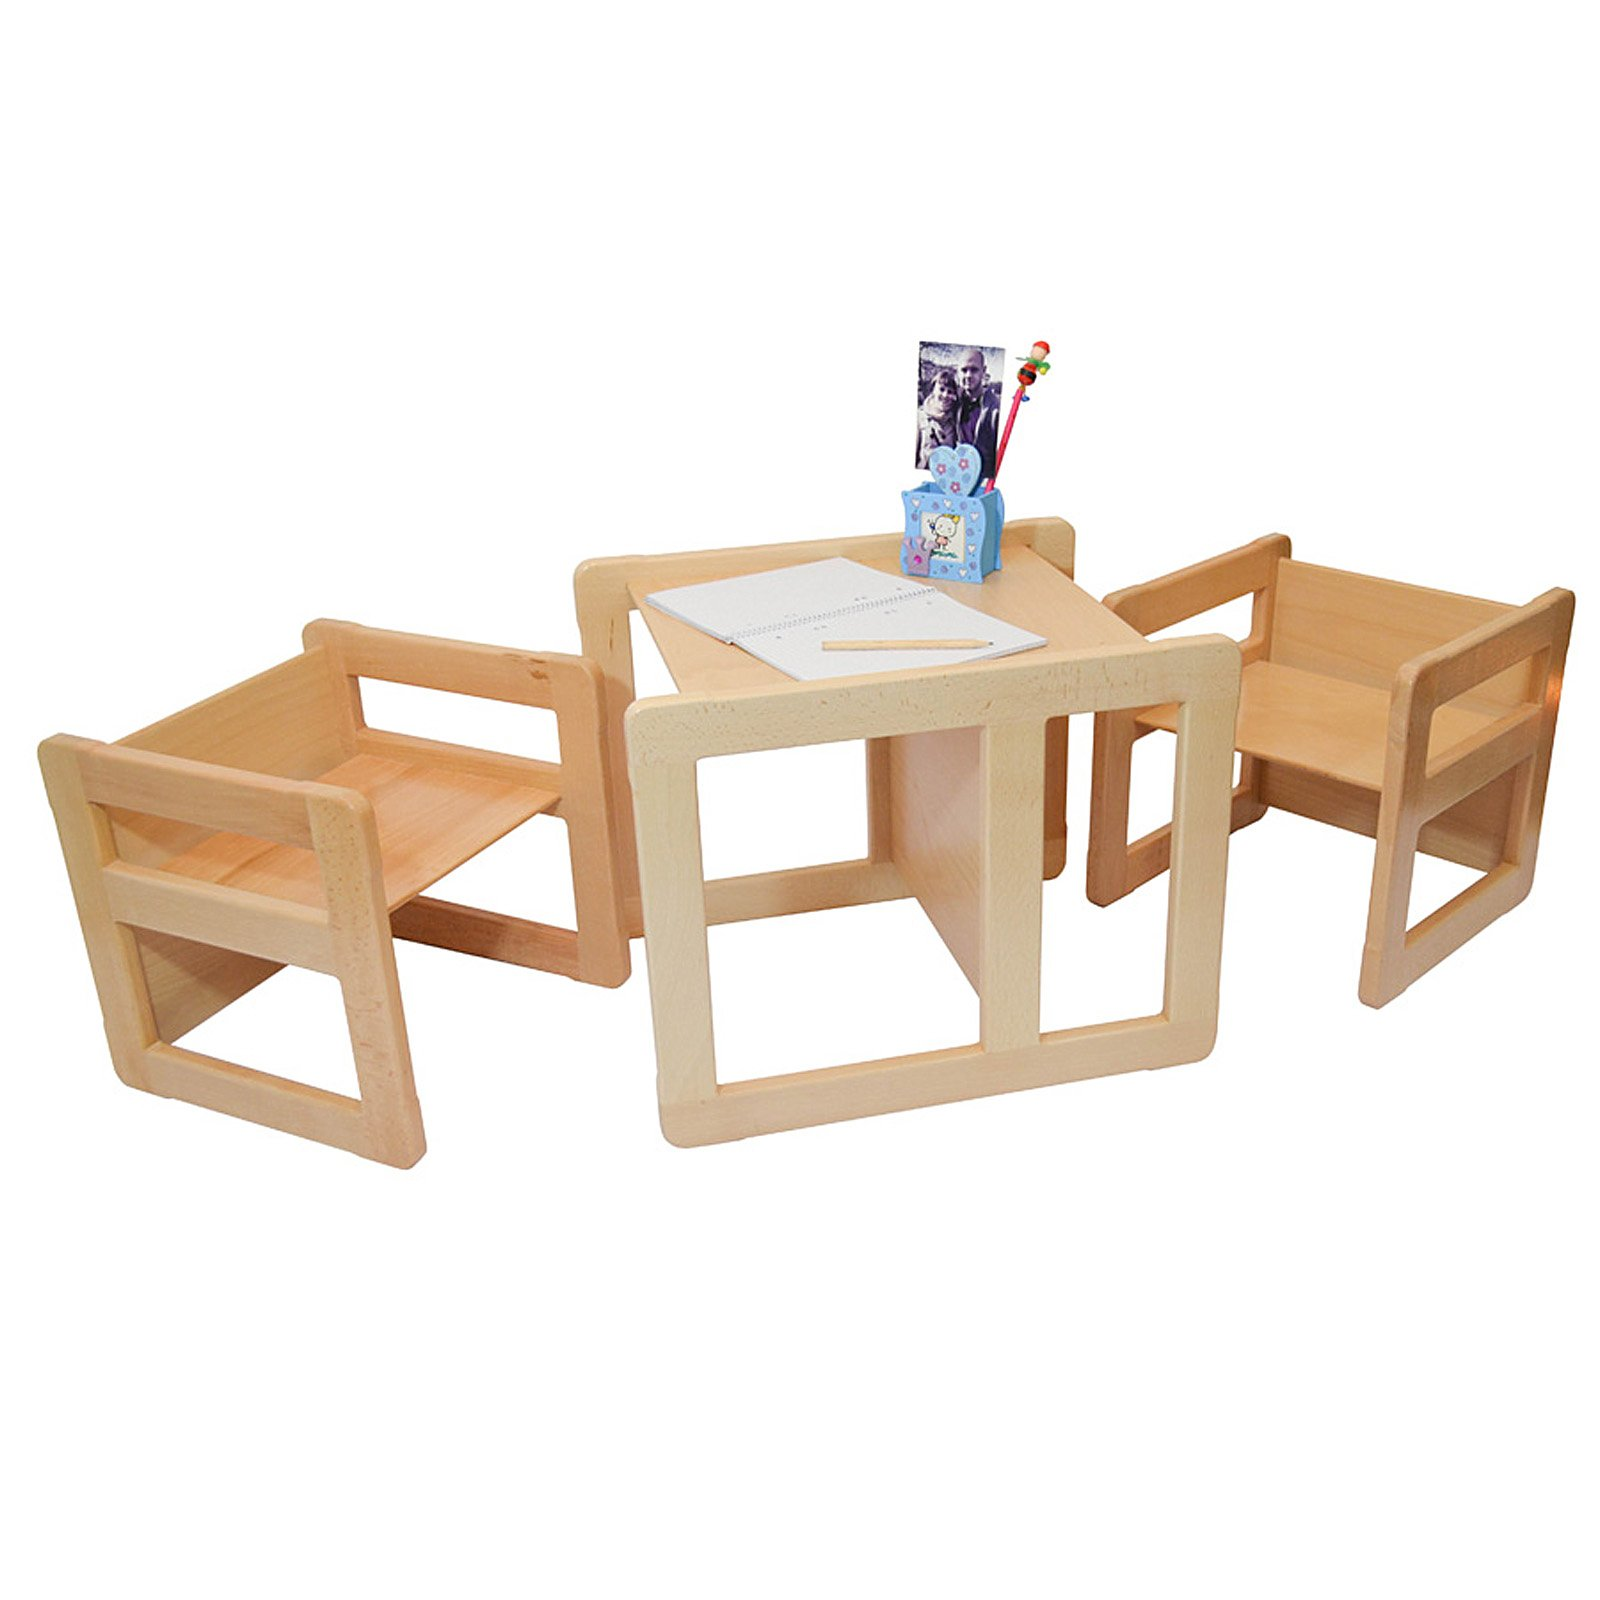 3 in 1 Childrens Multifunctional Furniture Set of 3, Two Small Chairs or Tables and One Large Chair or Table Beech Wood, Natural